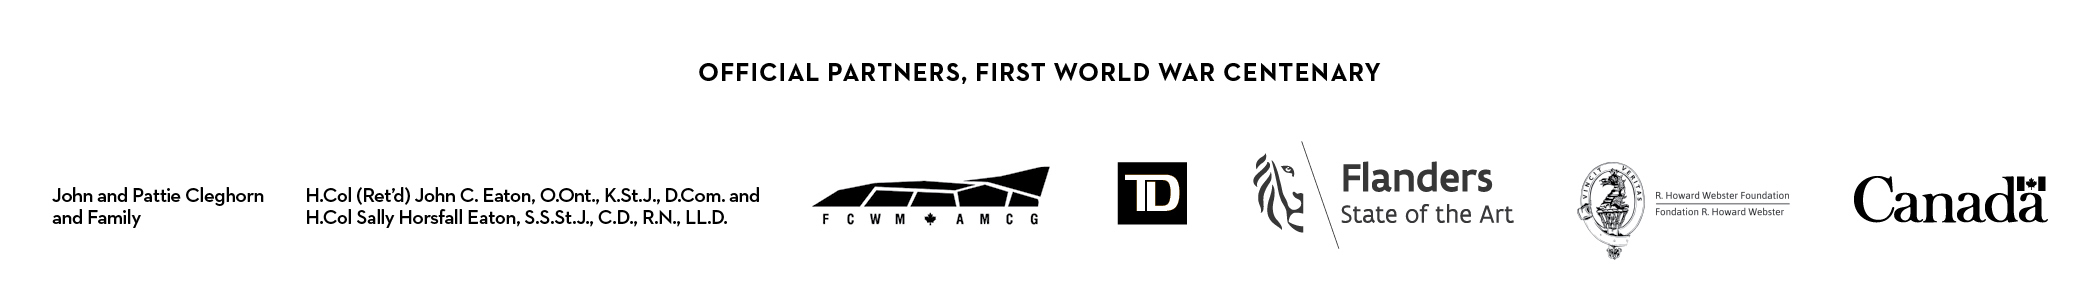 Offical Partners, First World War Centenary